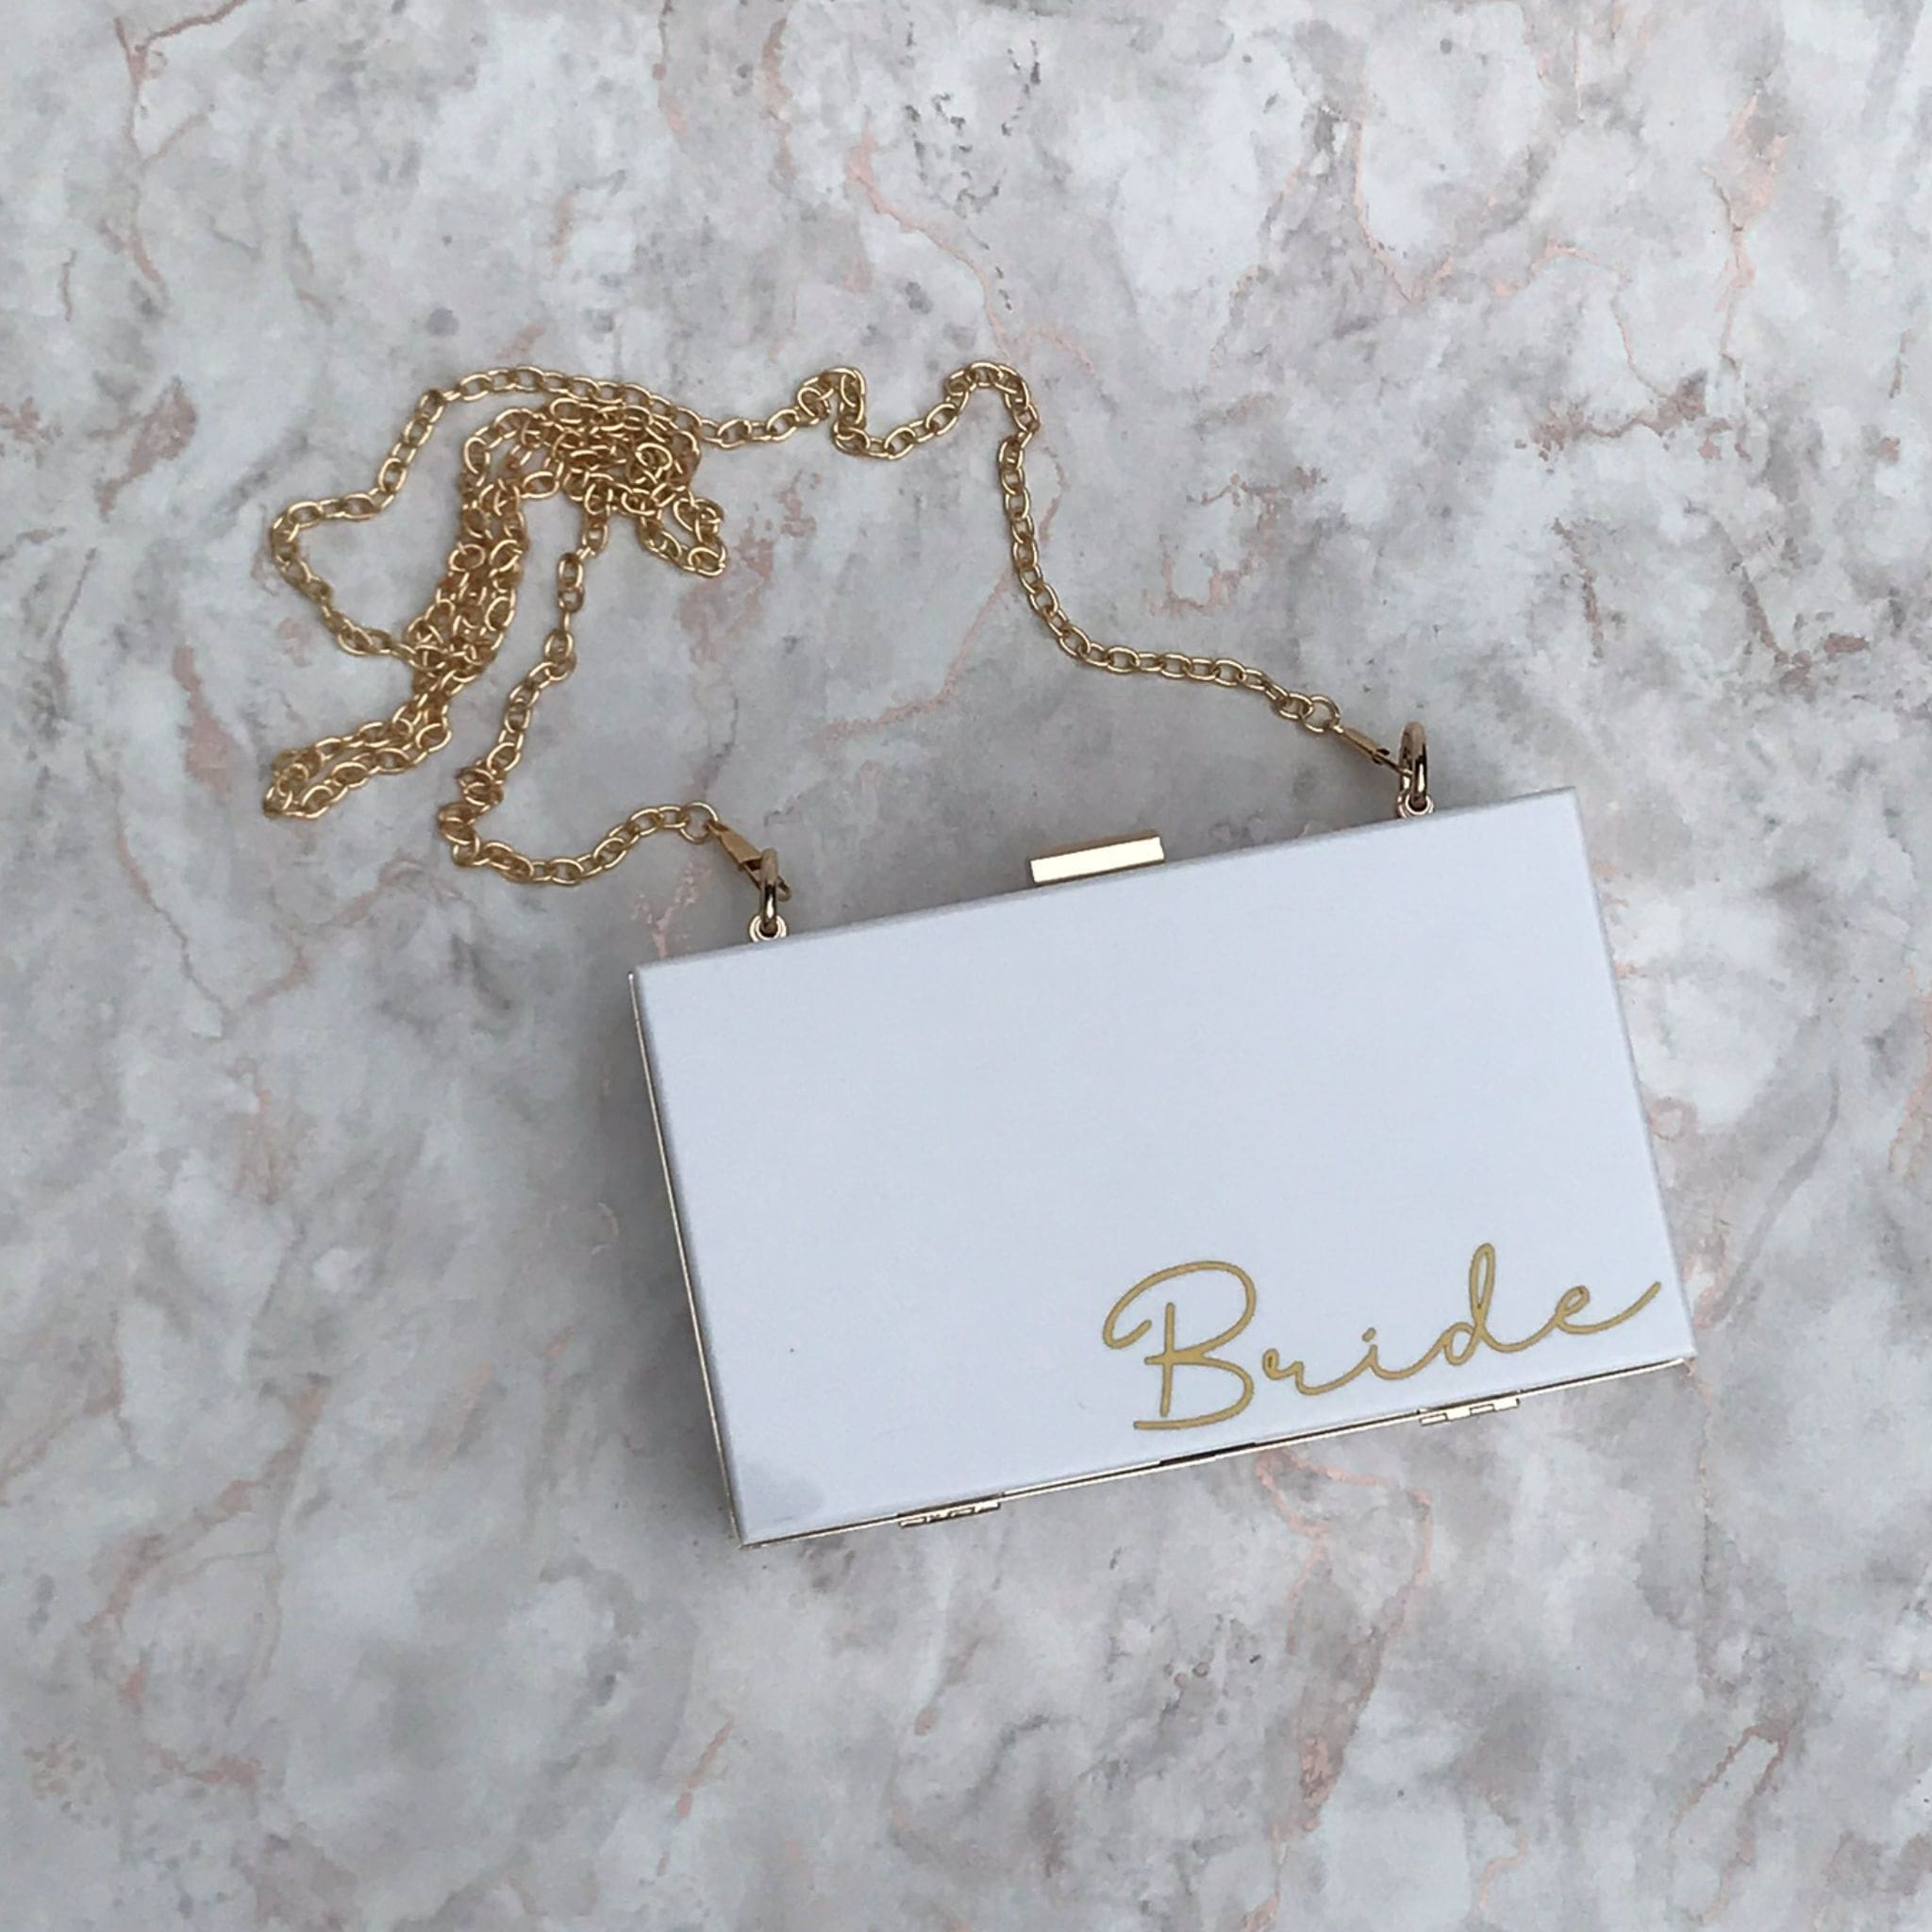 Acrylic Box Clutch Bag - Bride Small